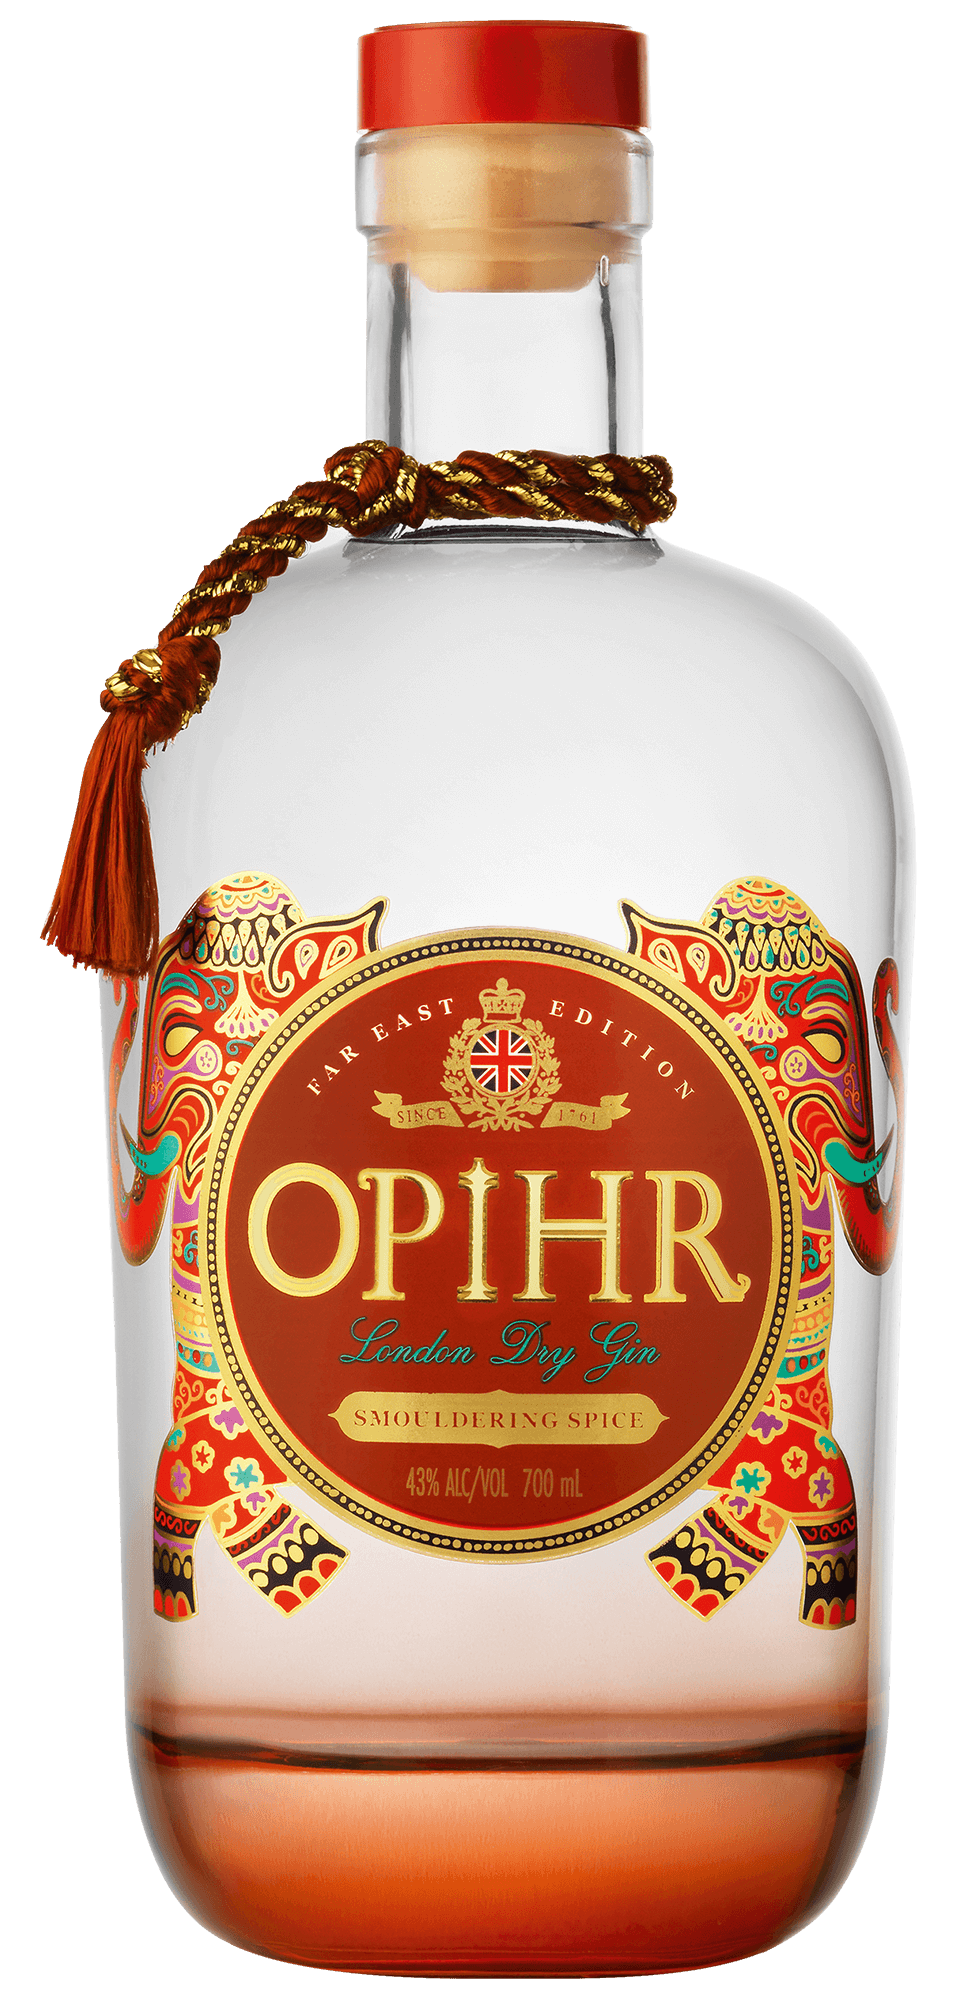 Opihr London Dry Gin Far East Edition